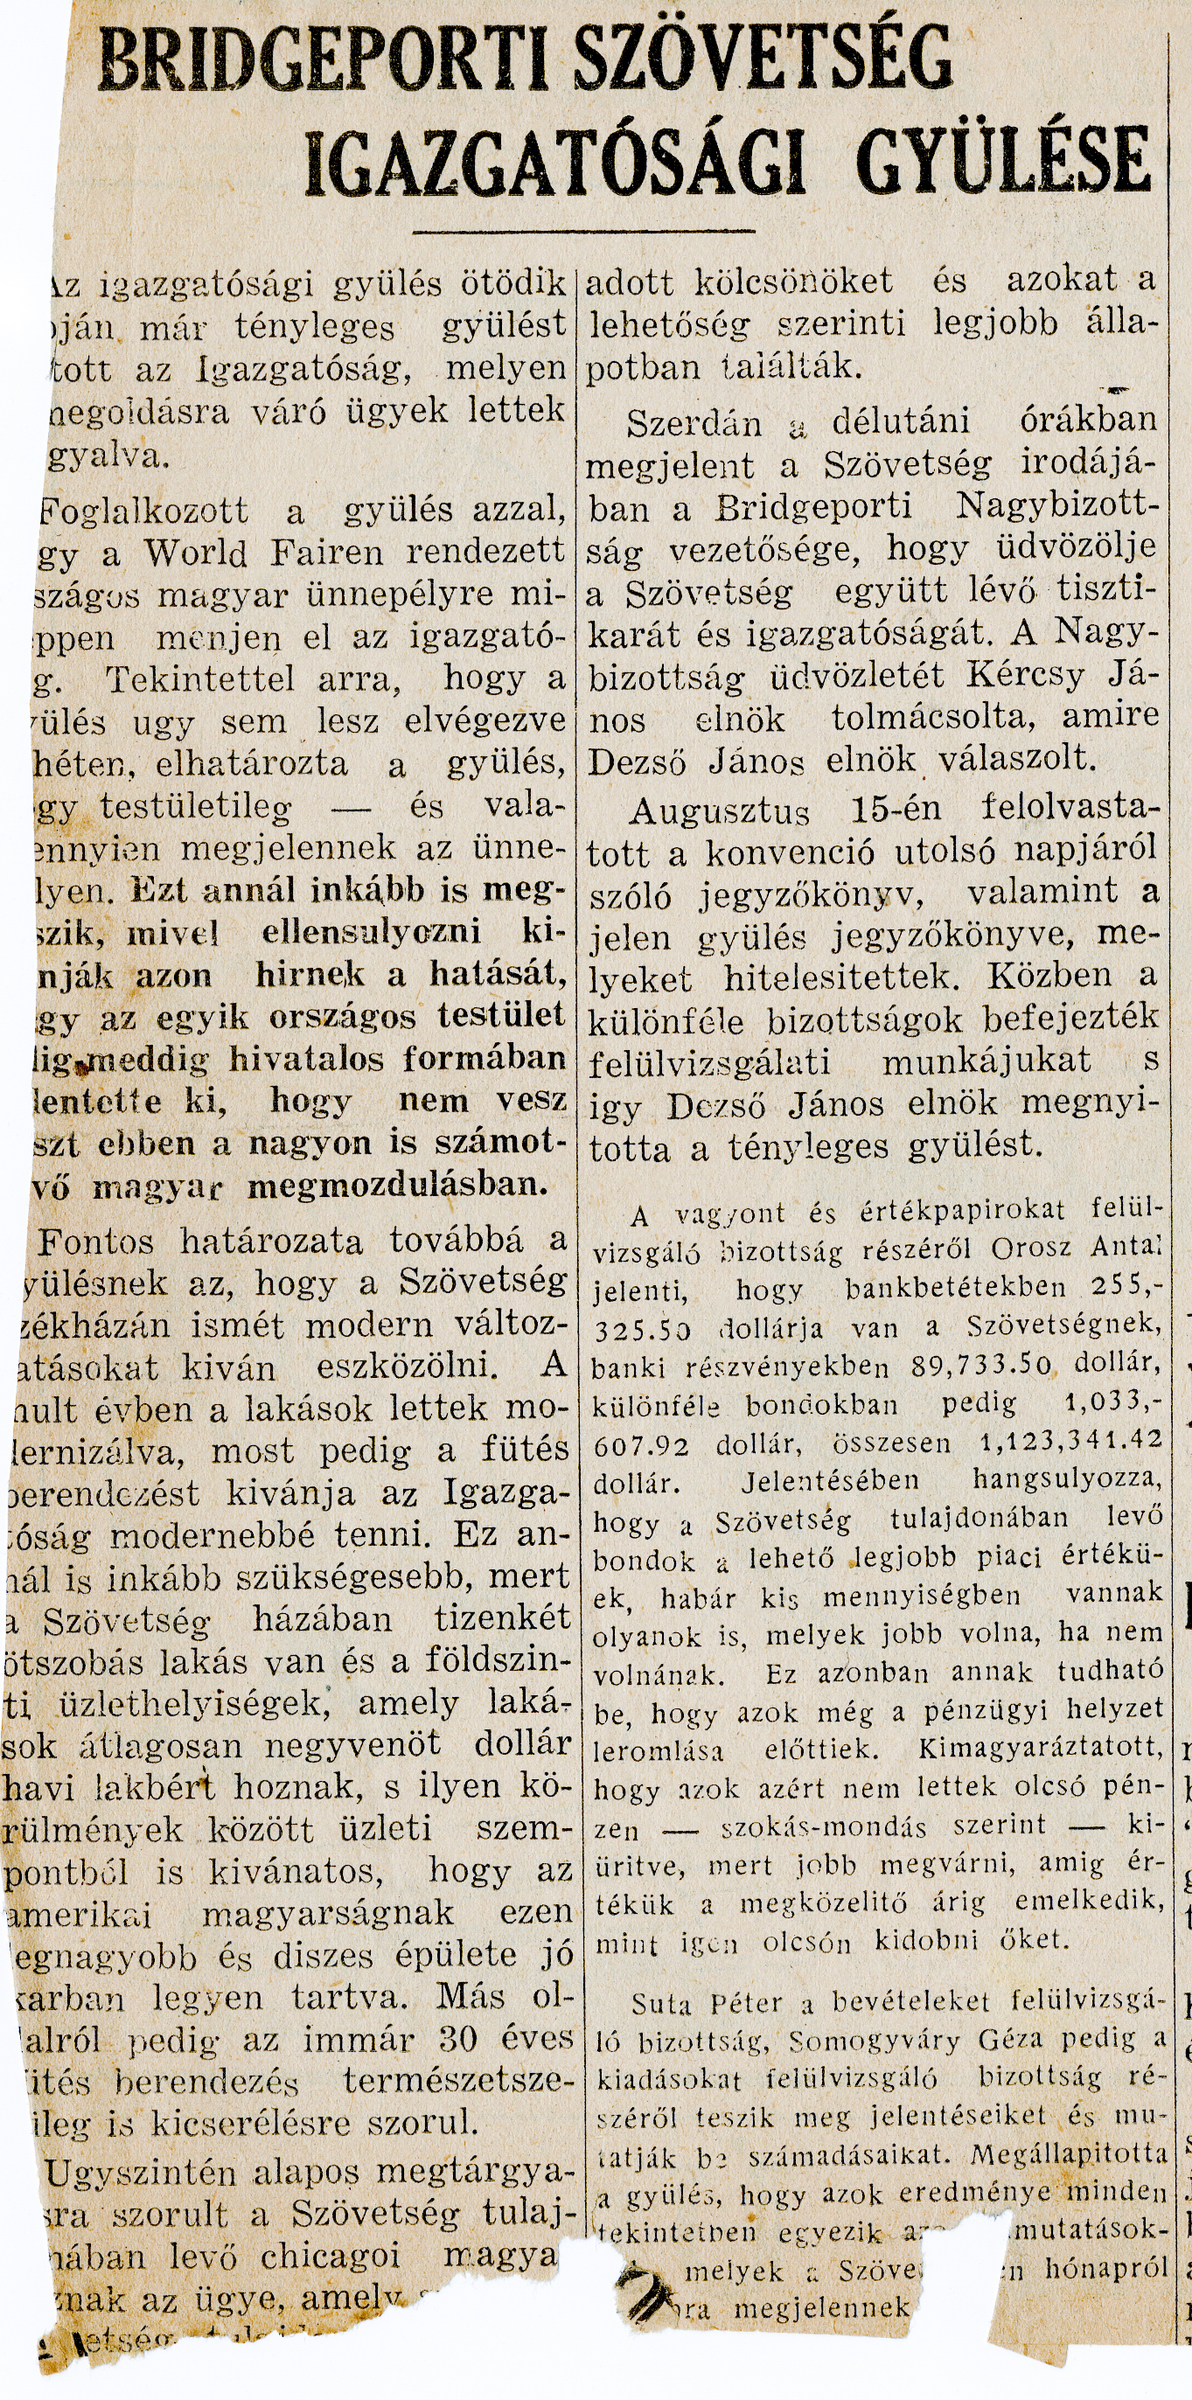 http://files.hungarianarchives.org/hungarianarchives/HUNGARIAN PAPERS/AHL_AMN/AHL_CONTR_AMN_Articles_011.jpg